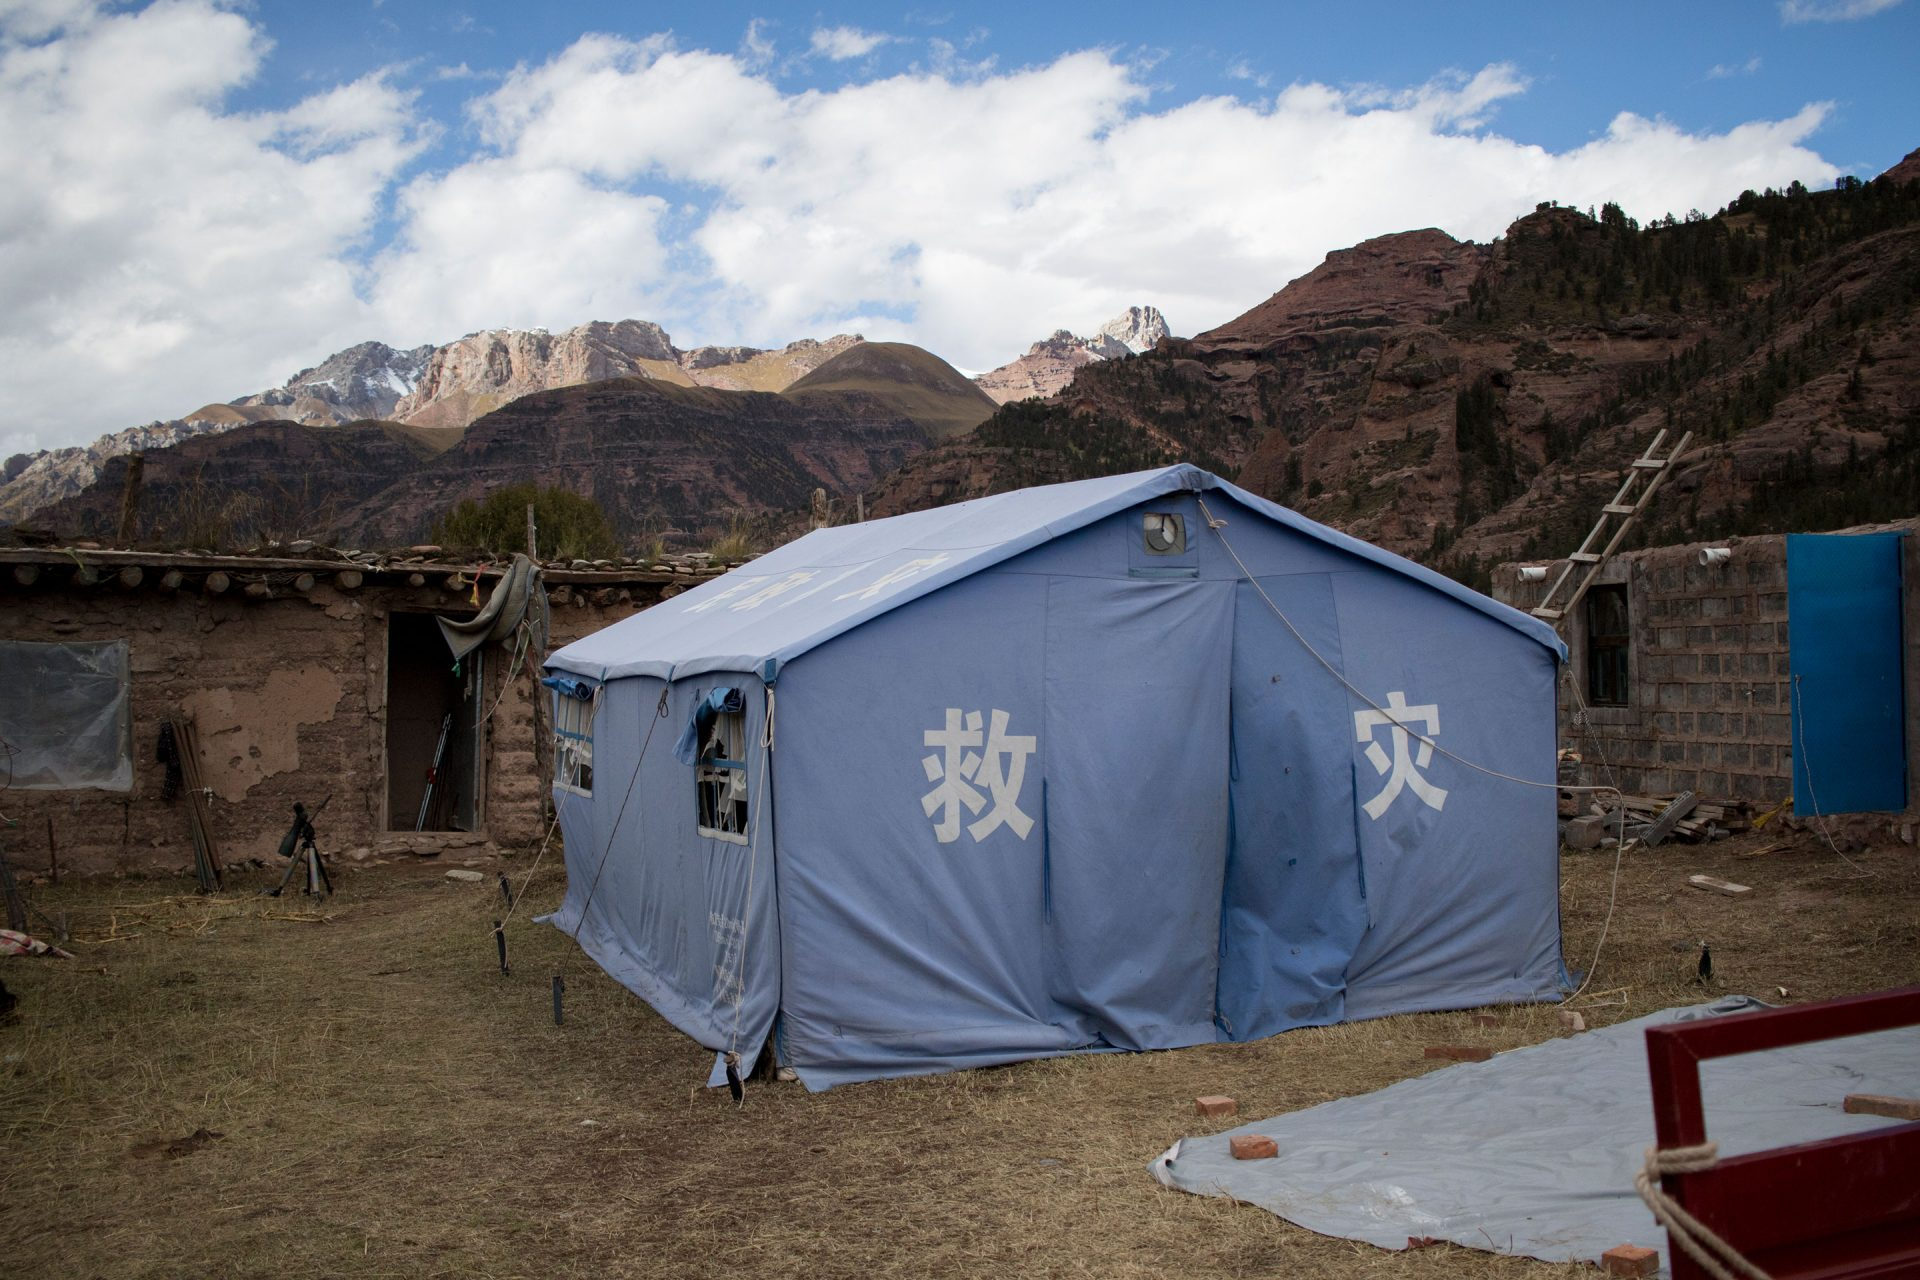 The family's son stayed in a left-over relief tent.